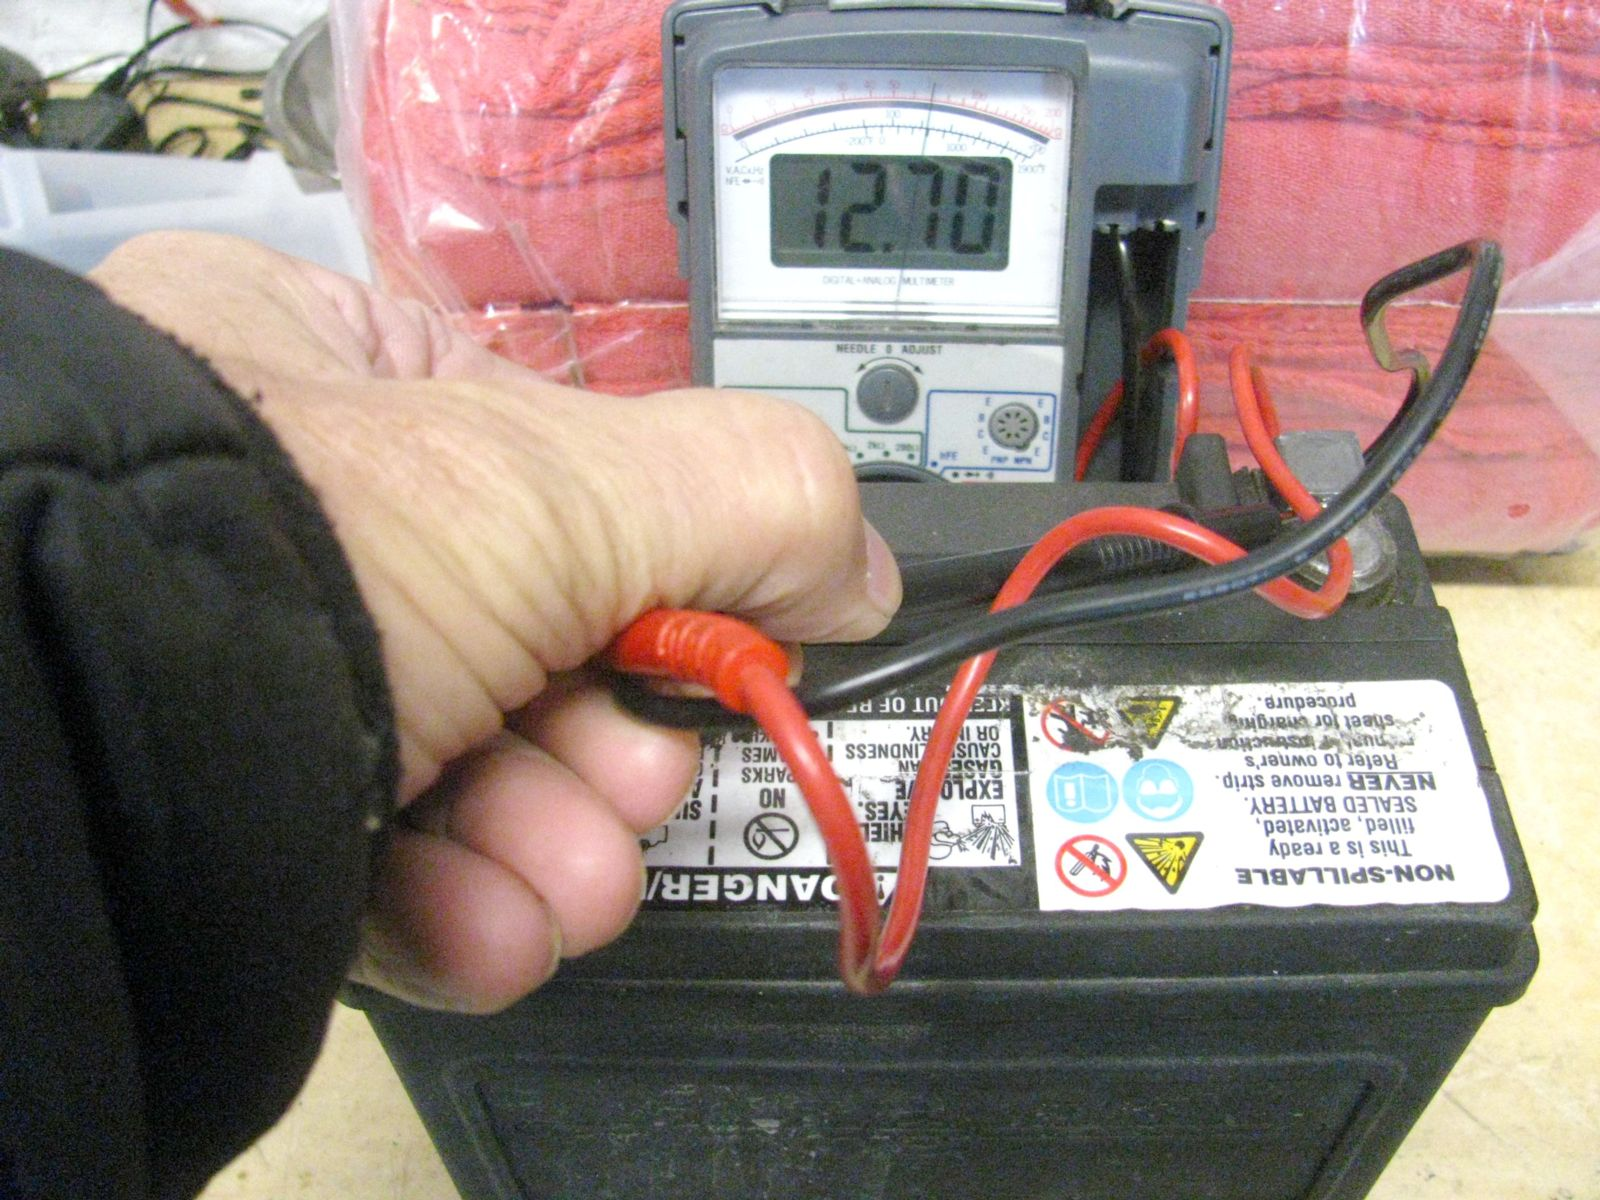 Testing motorcycle battery for proper charge